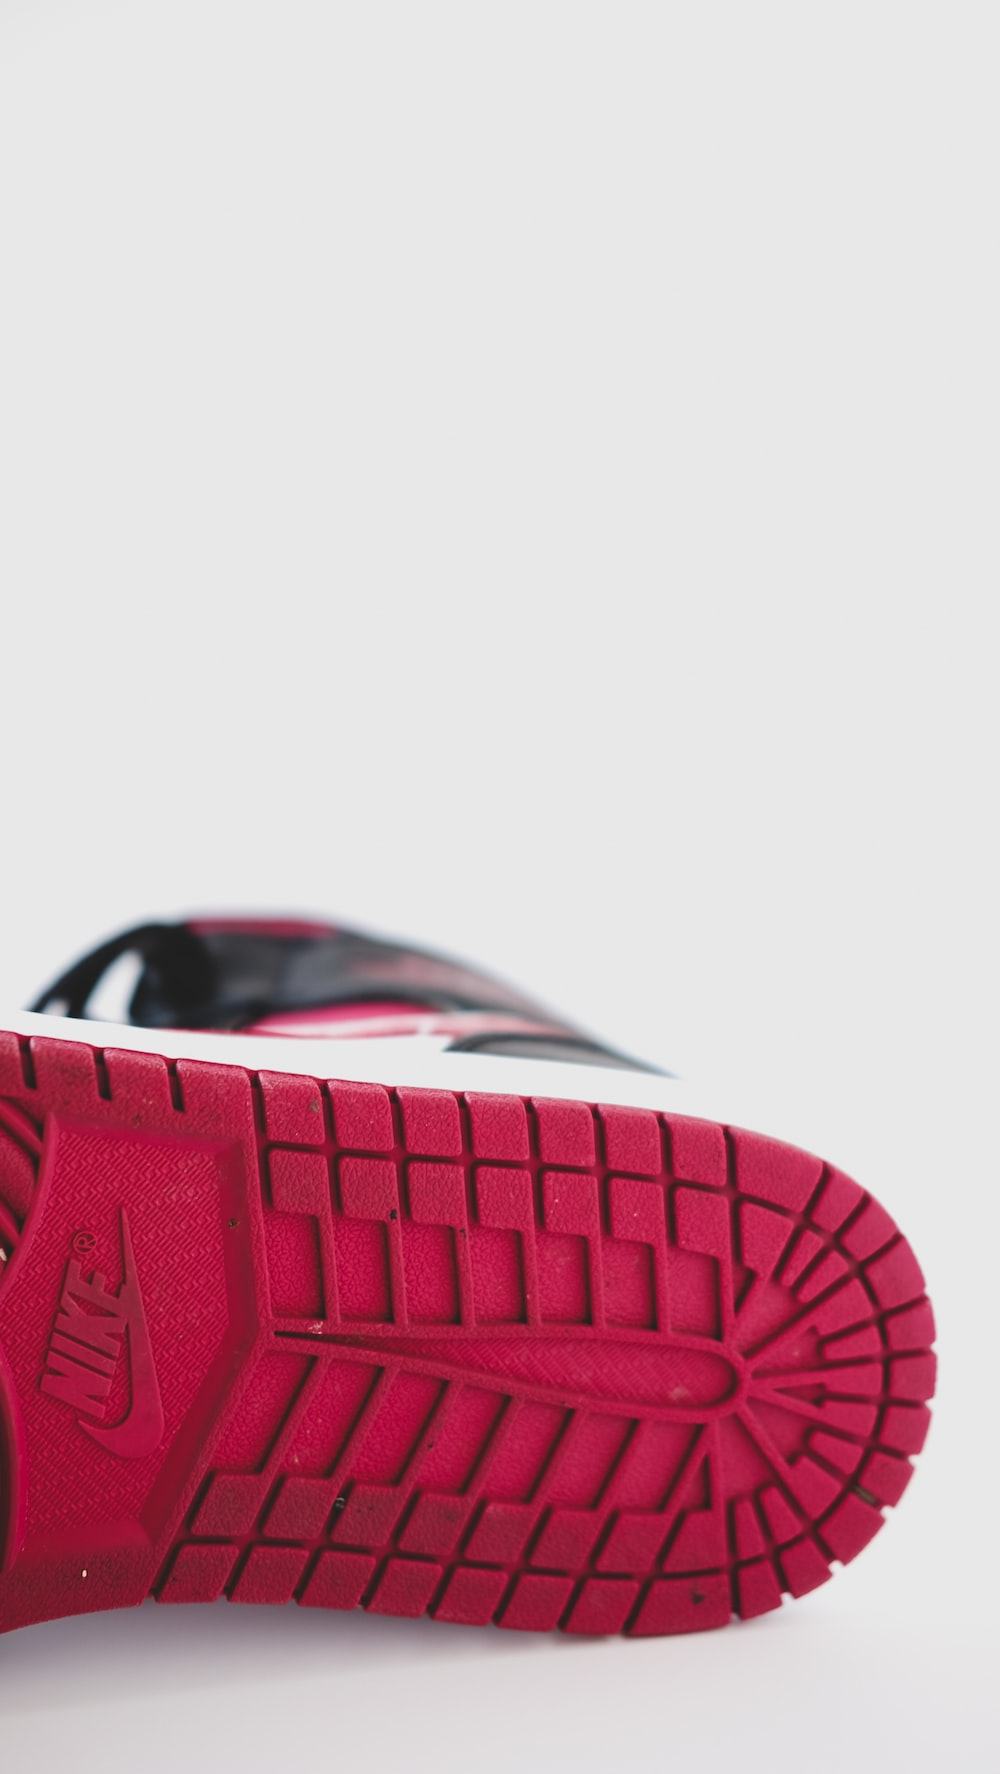 red and black nike athletic shoe